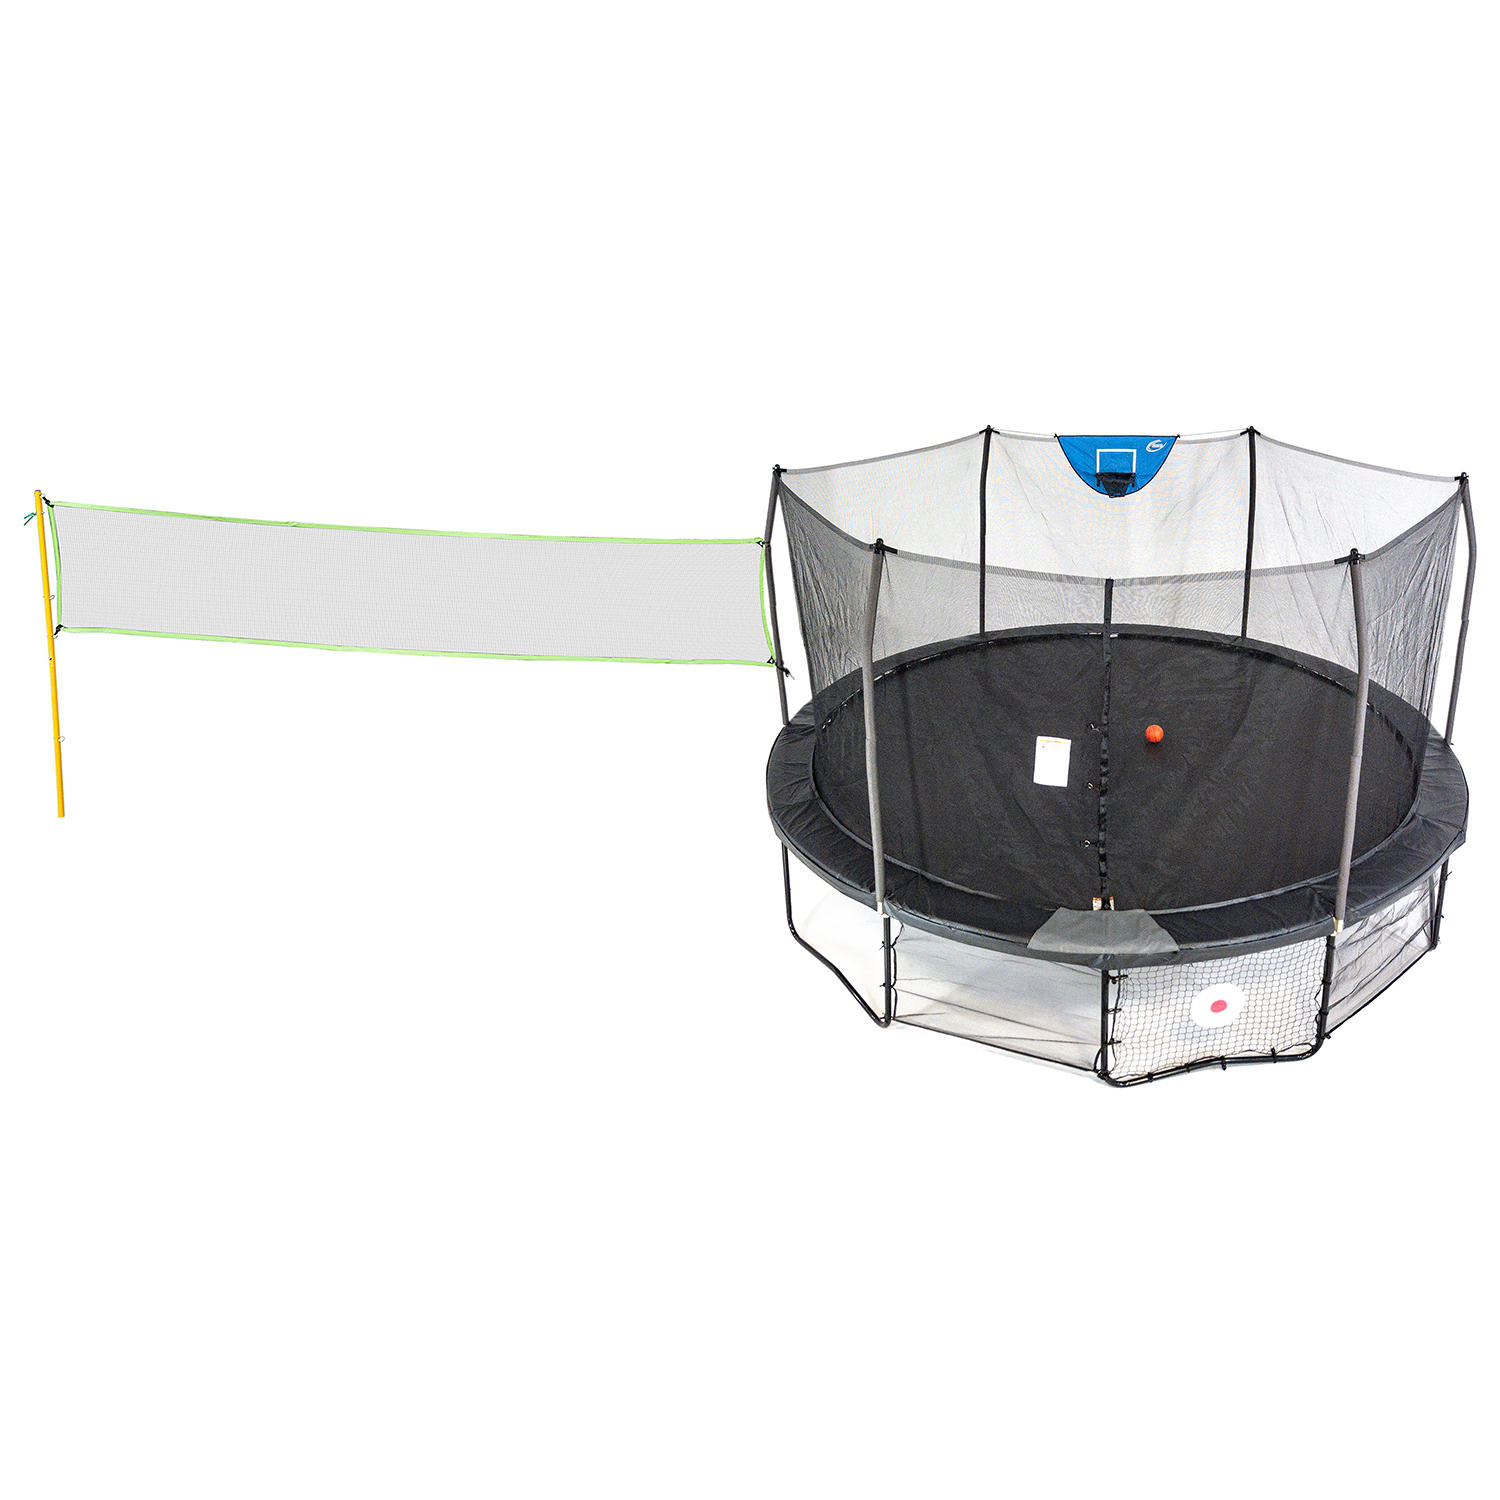 Skywalker Trampolines 16′ Deluxe Round Sports Arena Trampoline with Enclosure